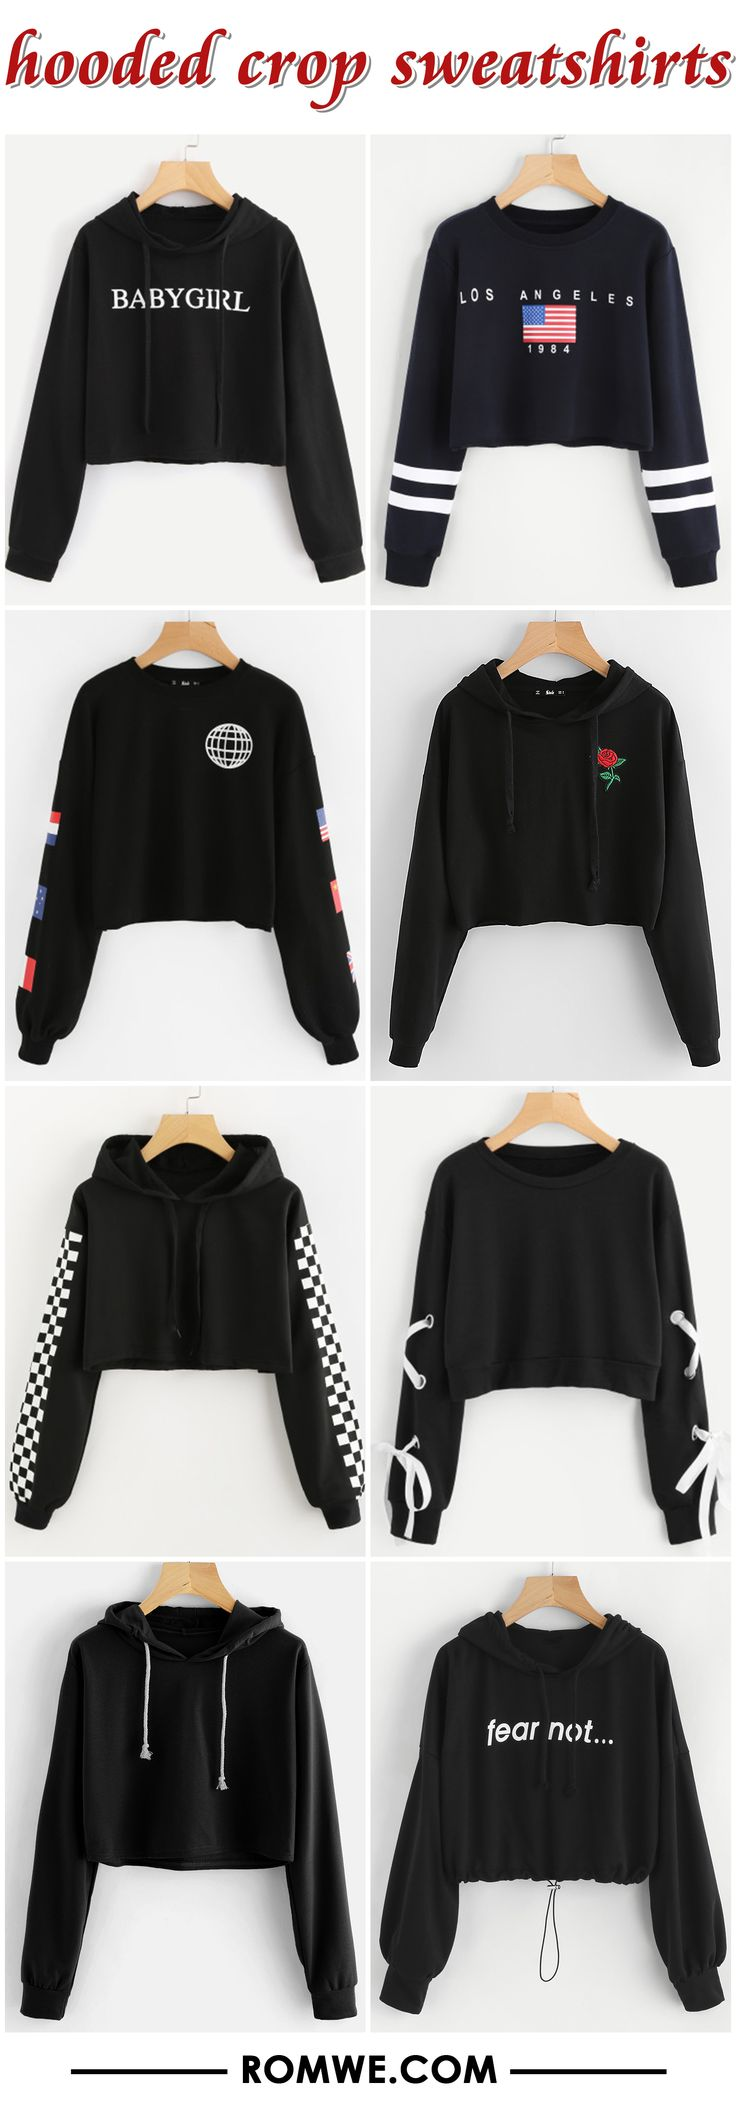 hooded crop sweatshirts from romwe.com